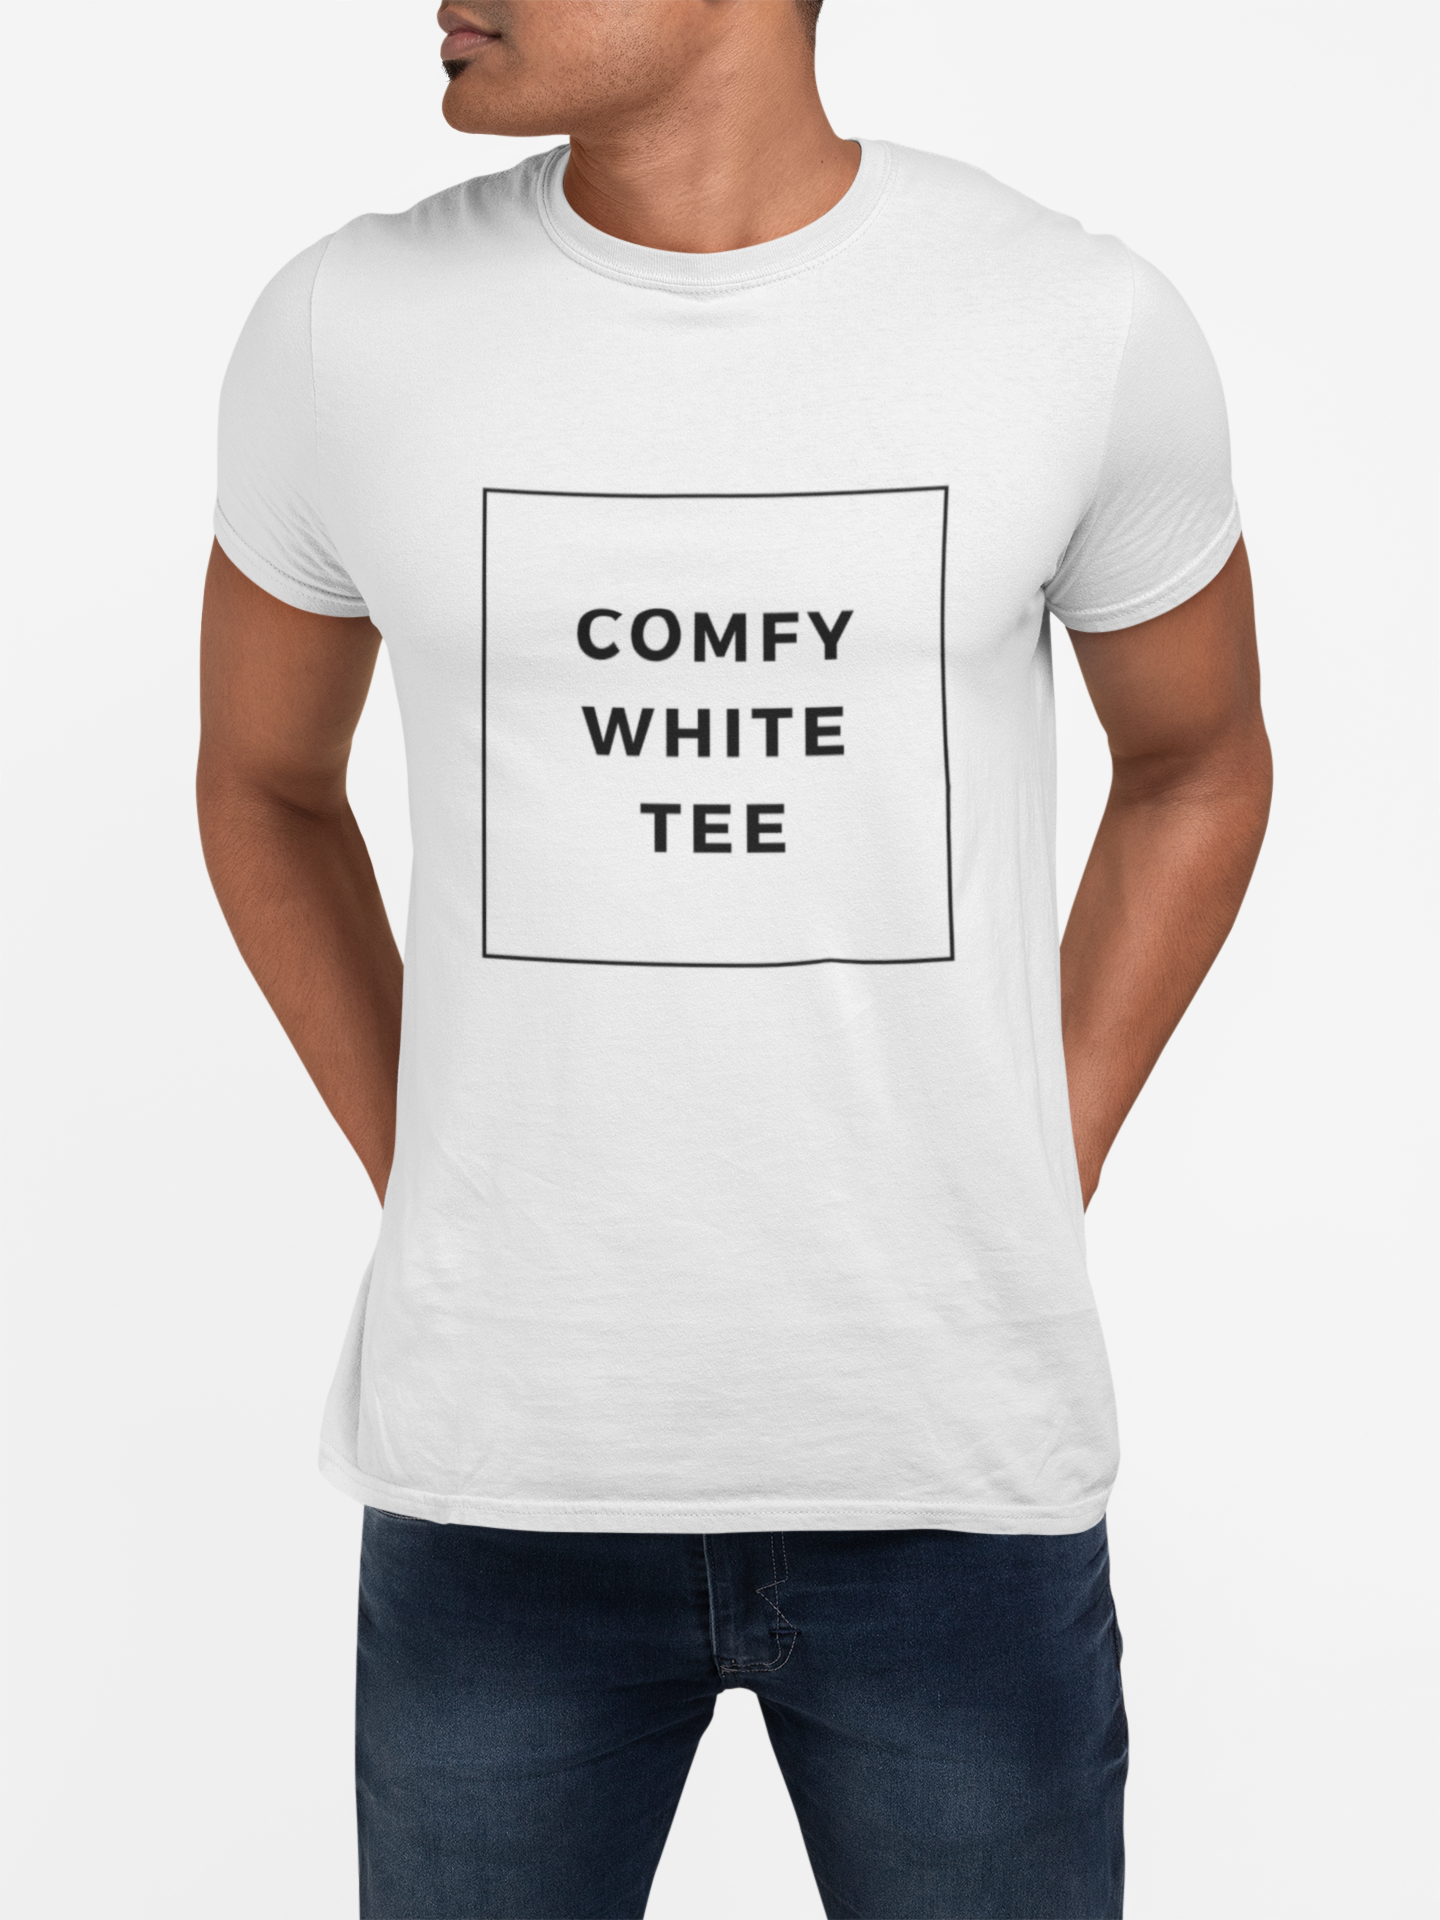 Men's Comfy White Crew Neck Tee